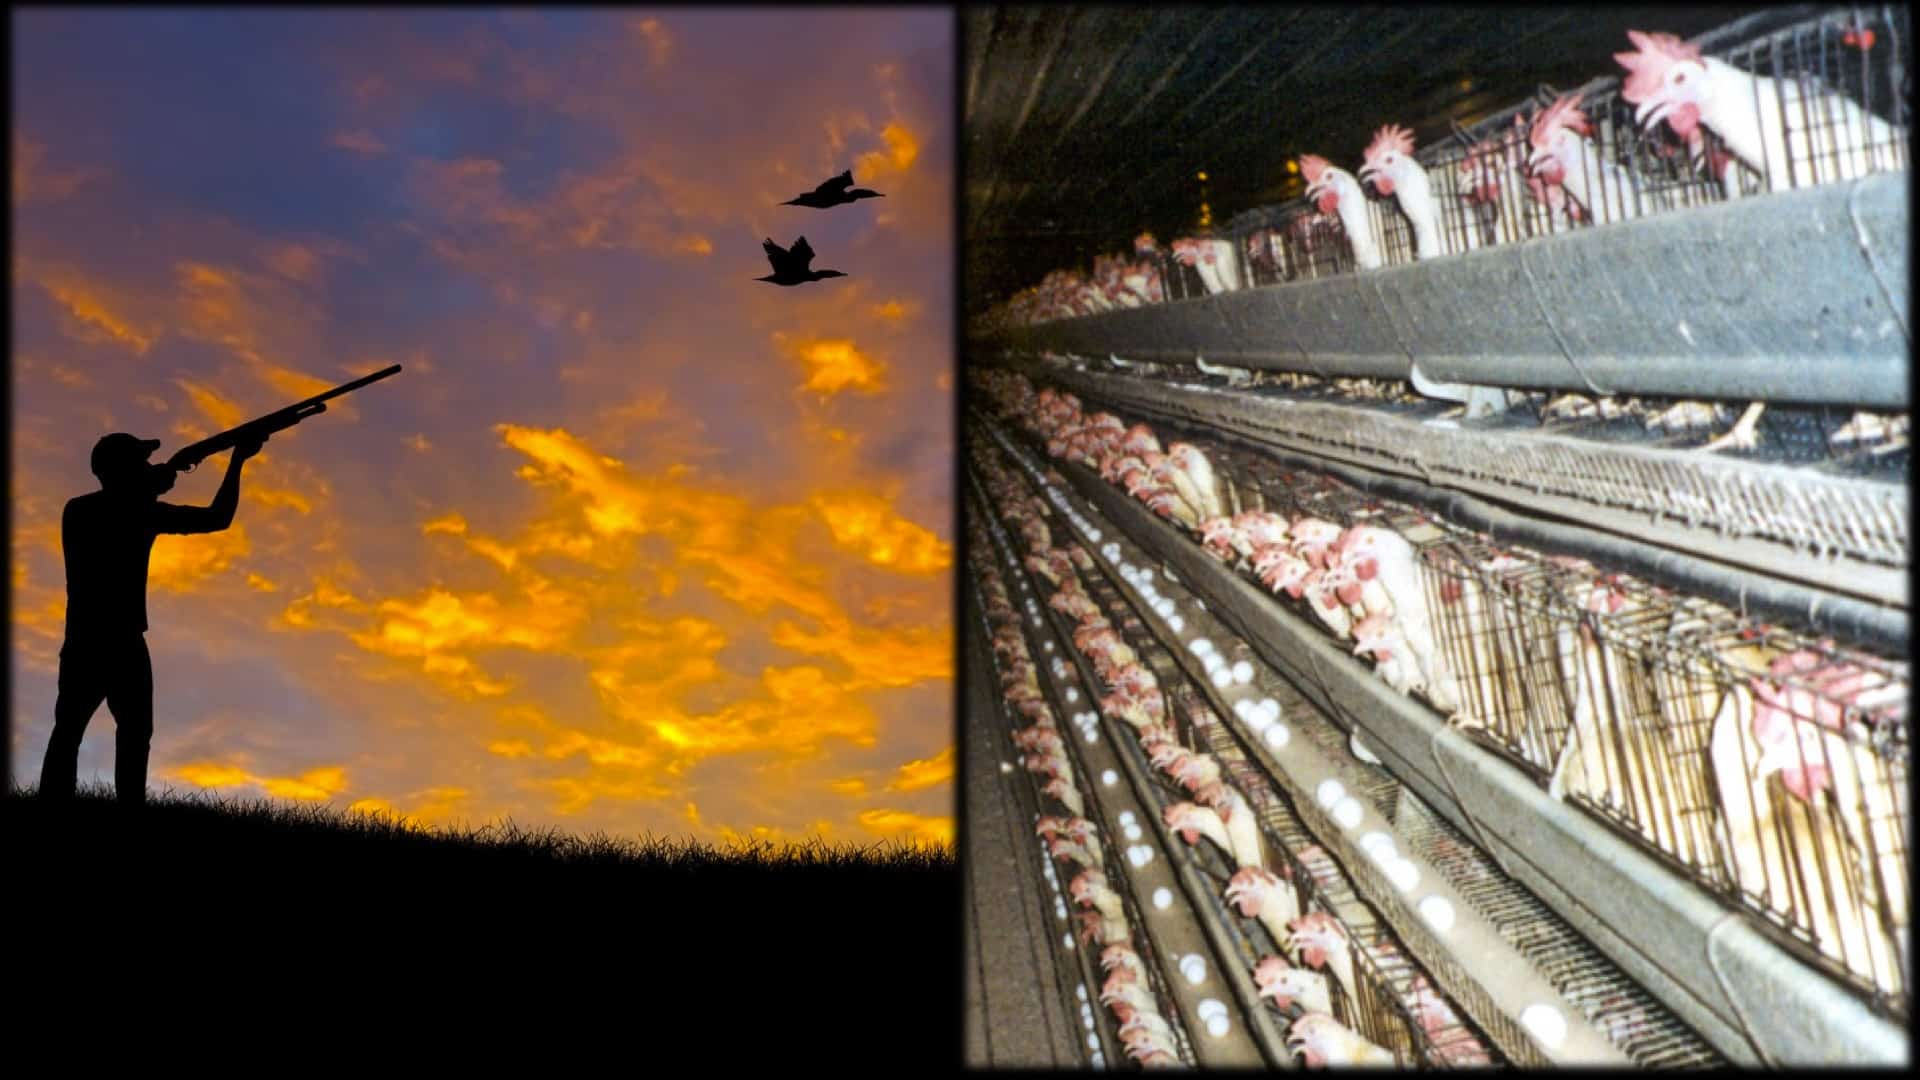 On the left a person is shown in silhouette as they shoot at birds flying over head with a shotgun. On the right is an image of row after row after row of battery chickens in tiny cages.